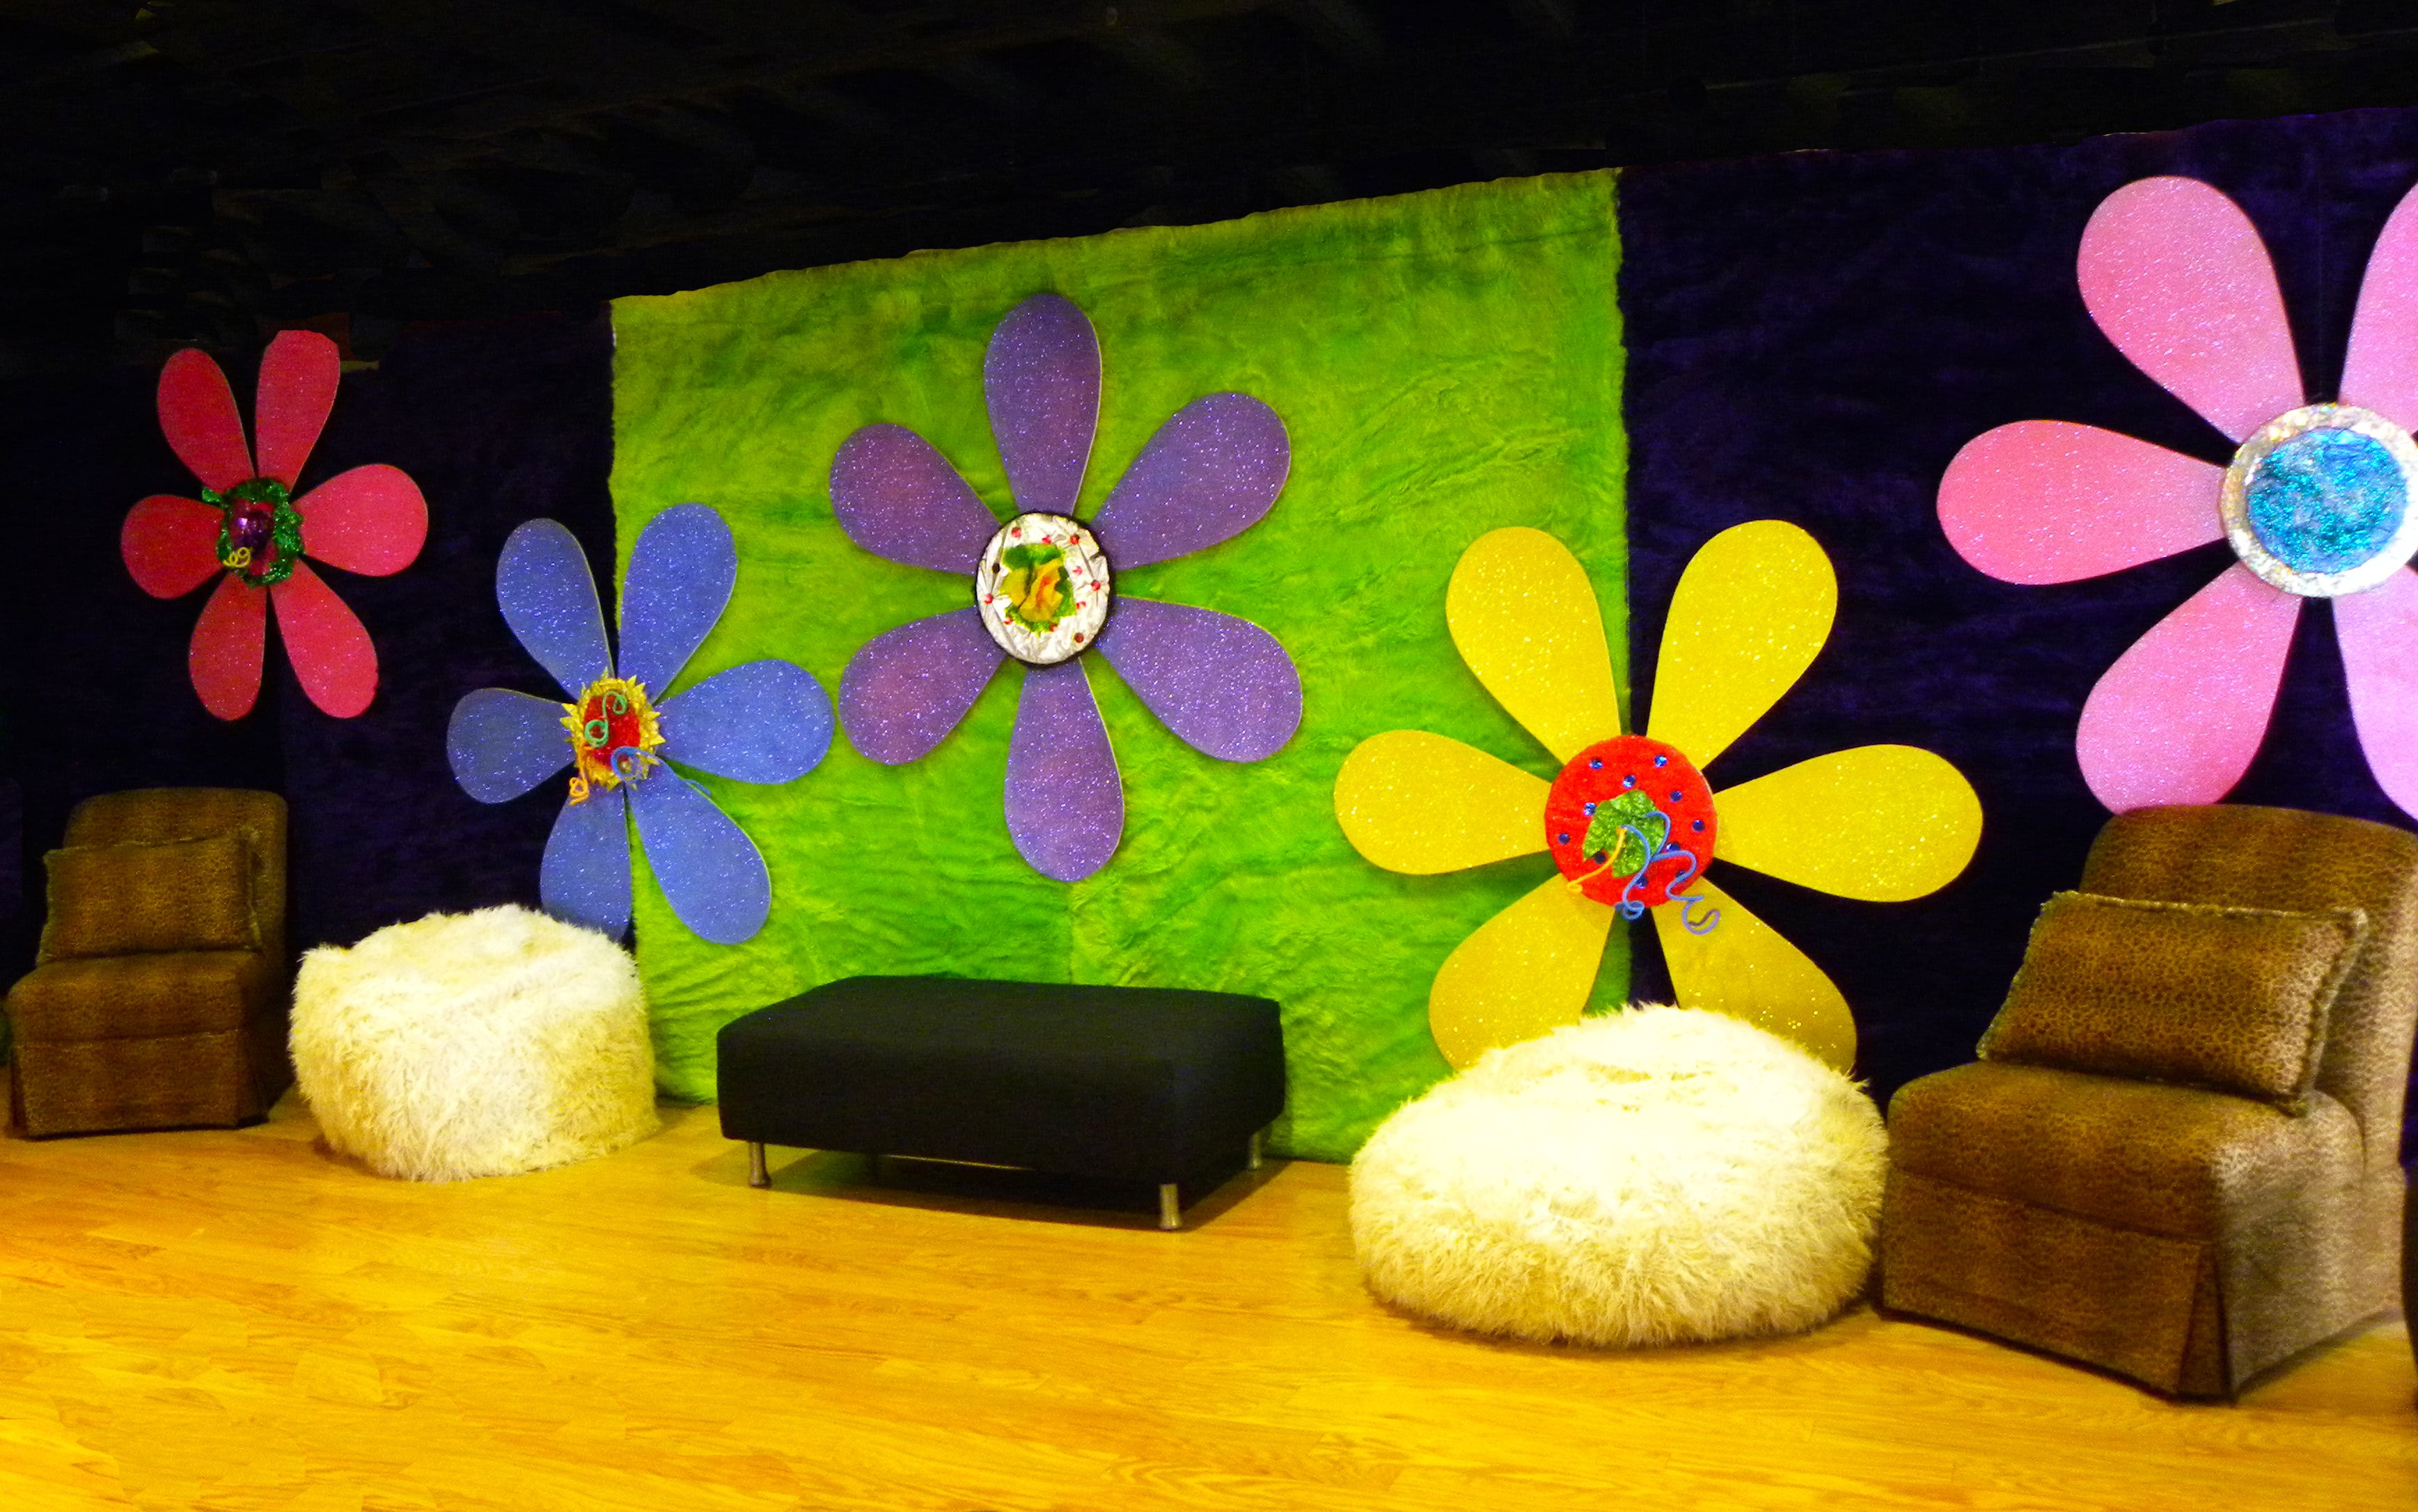 Groovy flower backdrop with retro seating 70 39 s party for 60s decoration ideas party